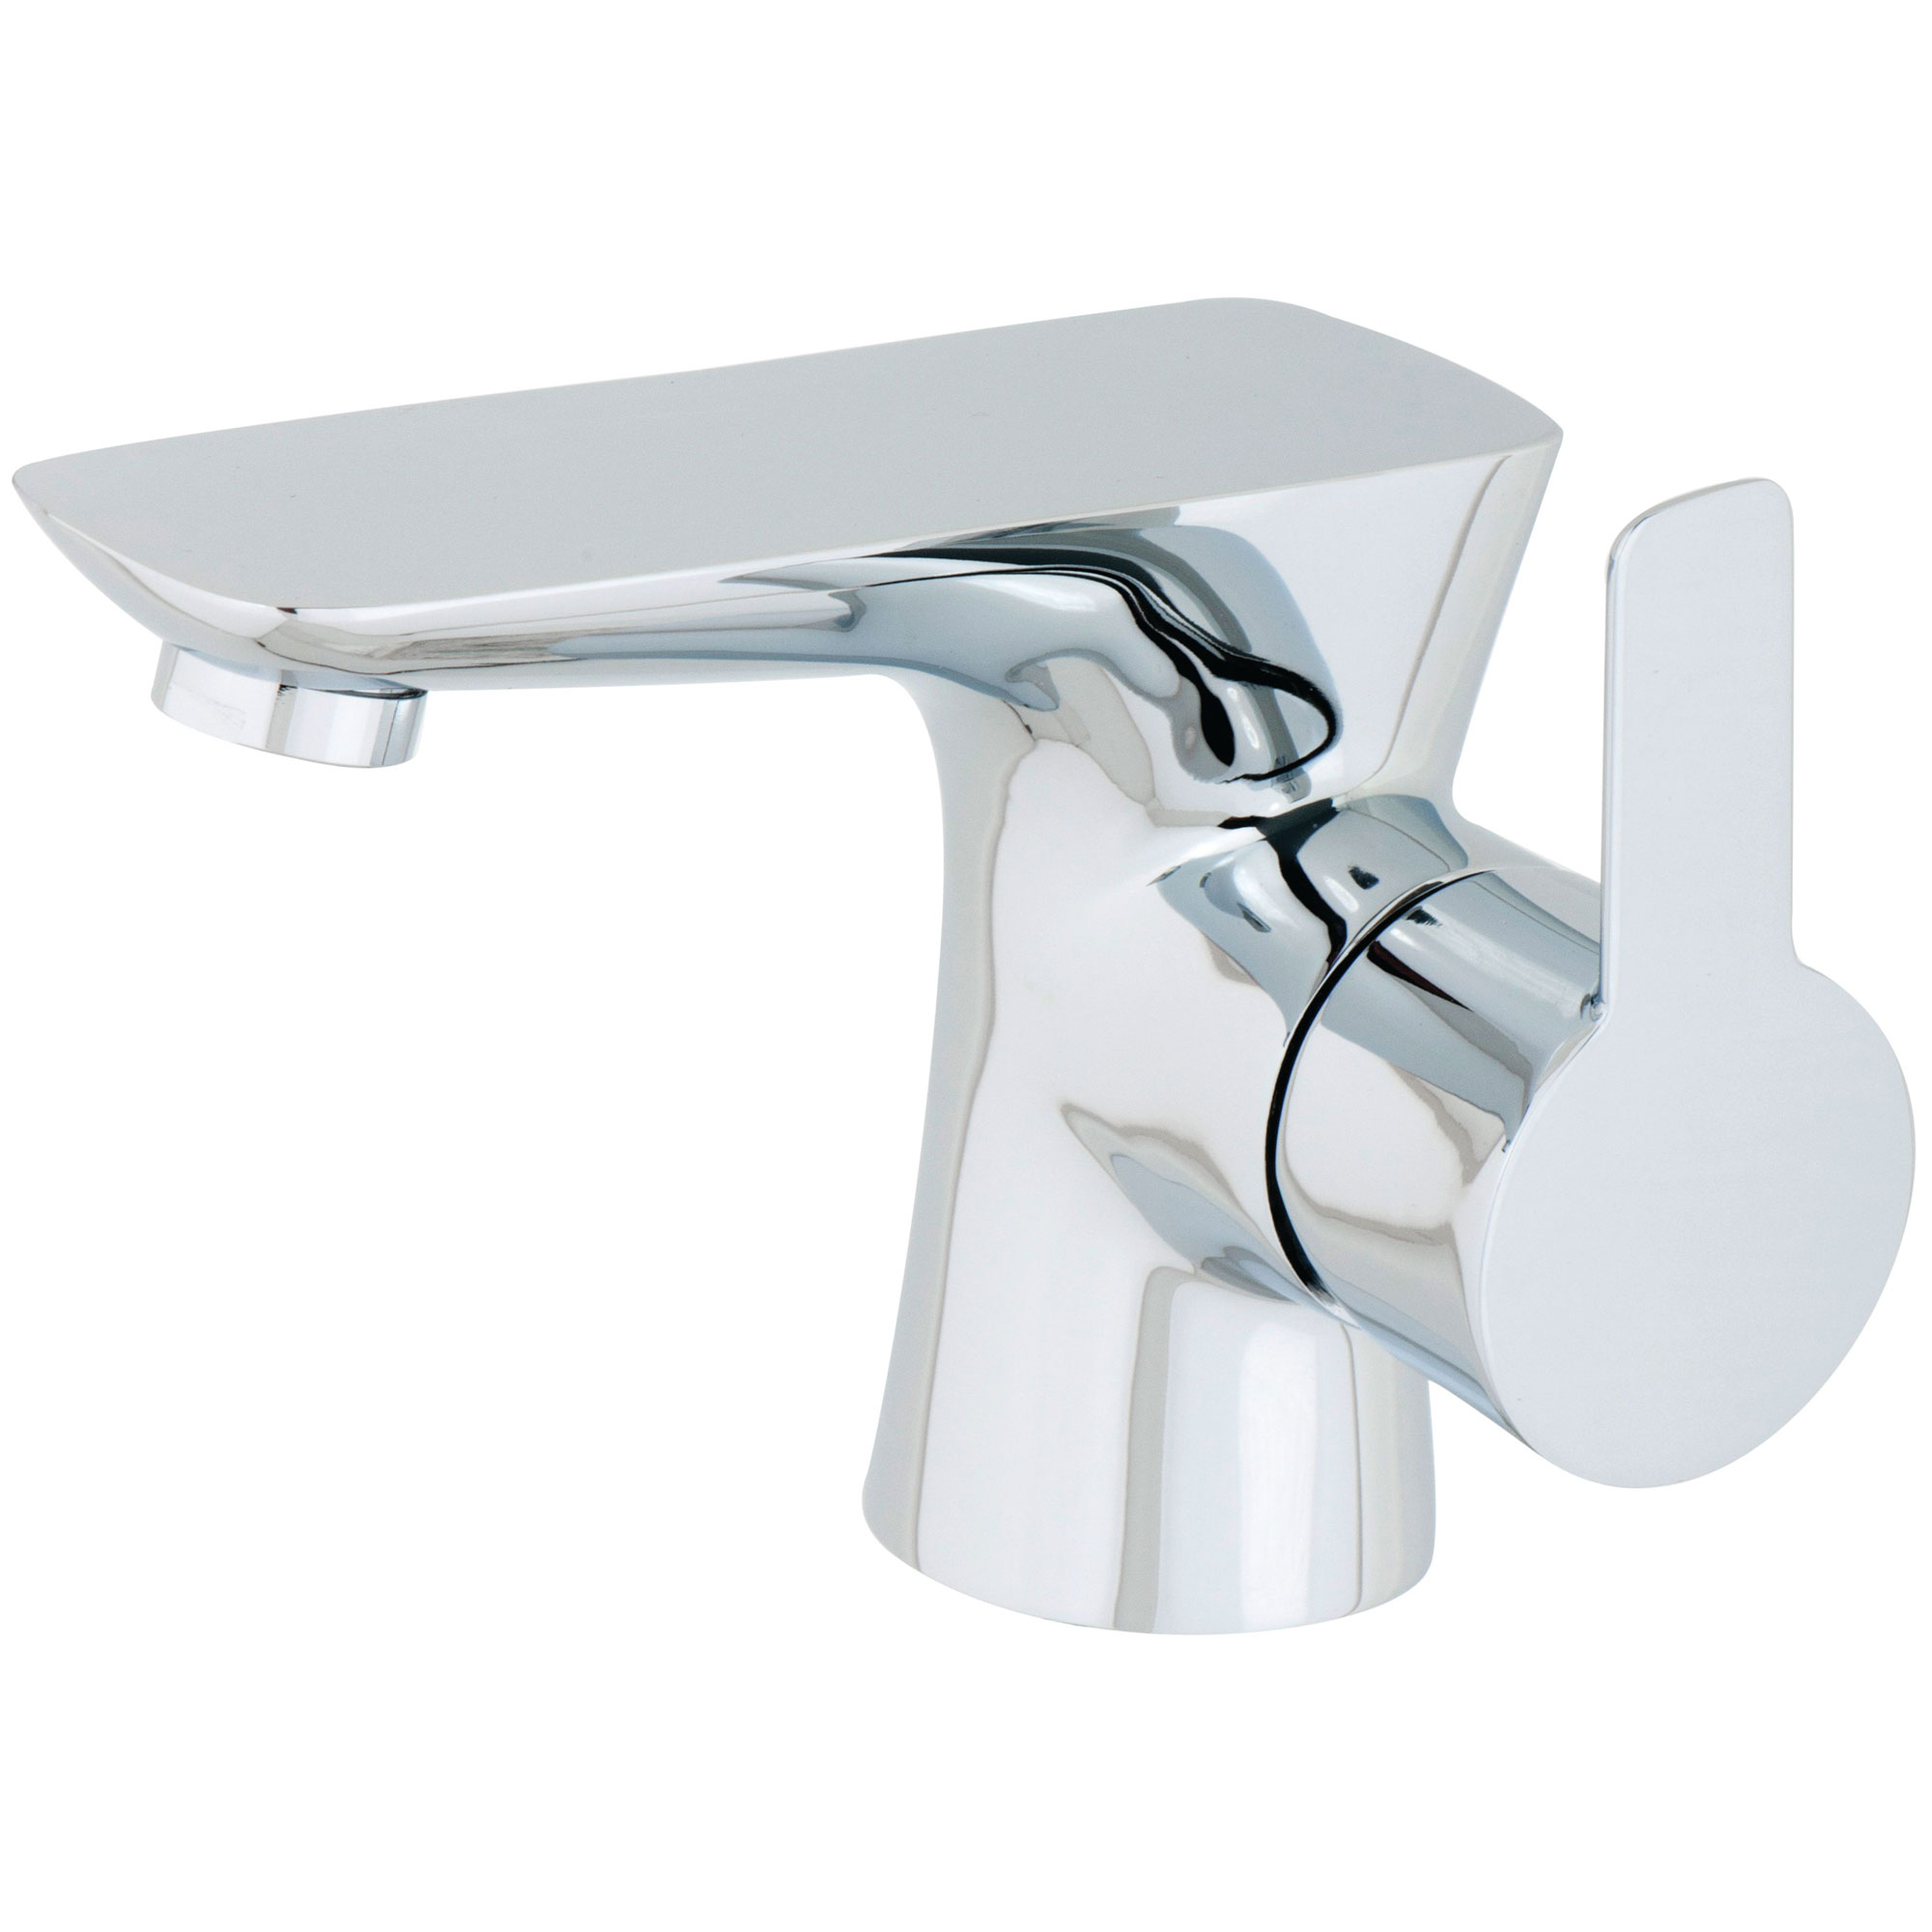 Cali Pedras Mono Basin Mixer Tap Deck Mounted with Click Clack Waste - Chrome